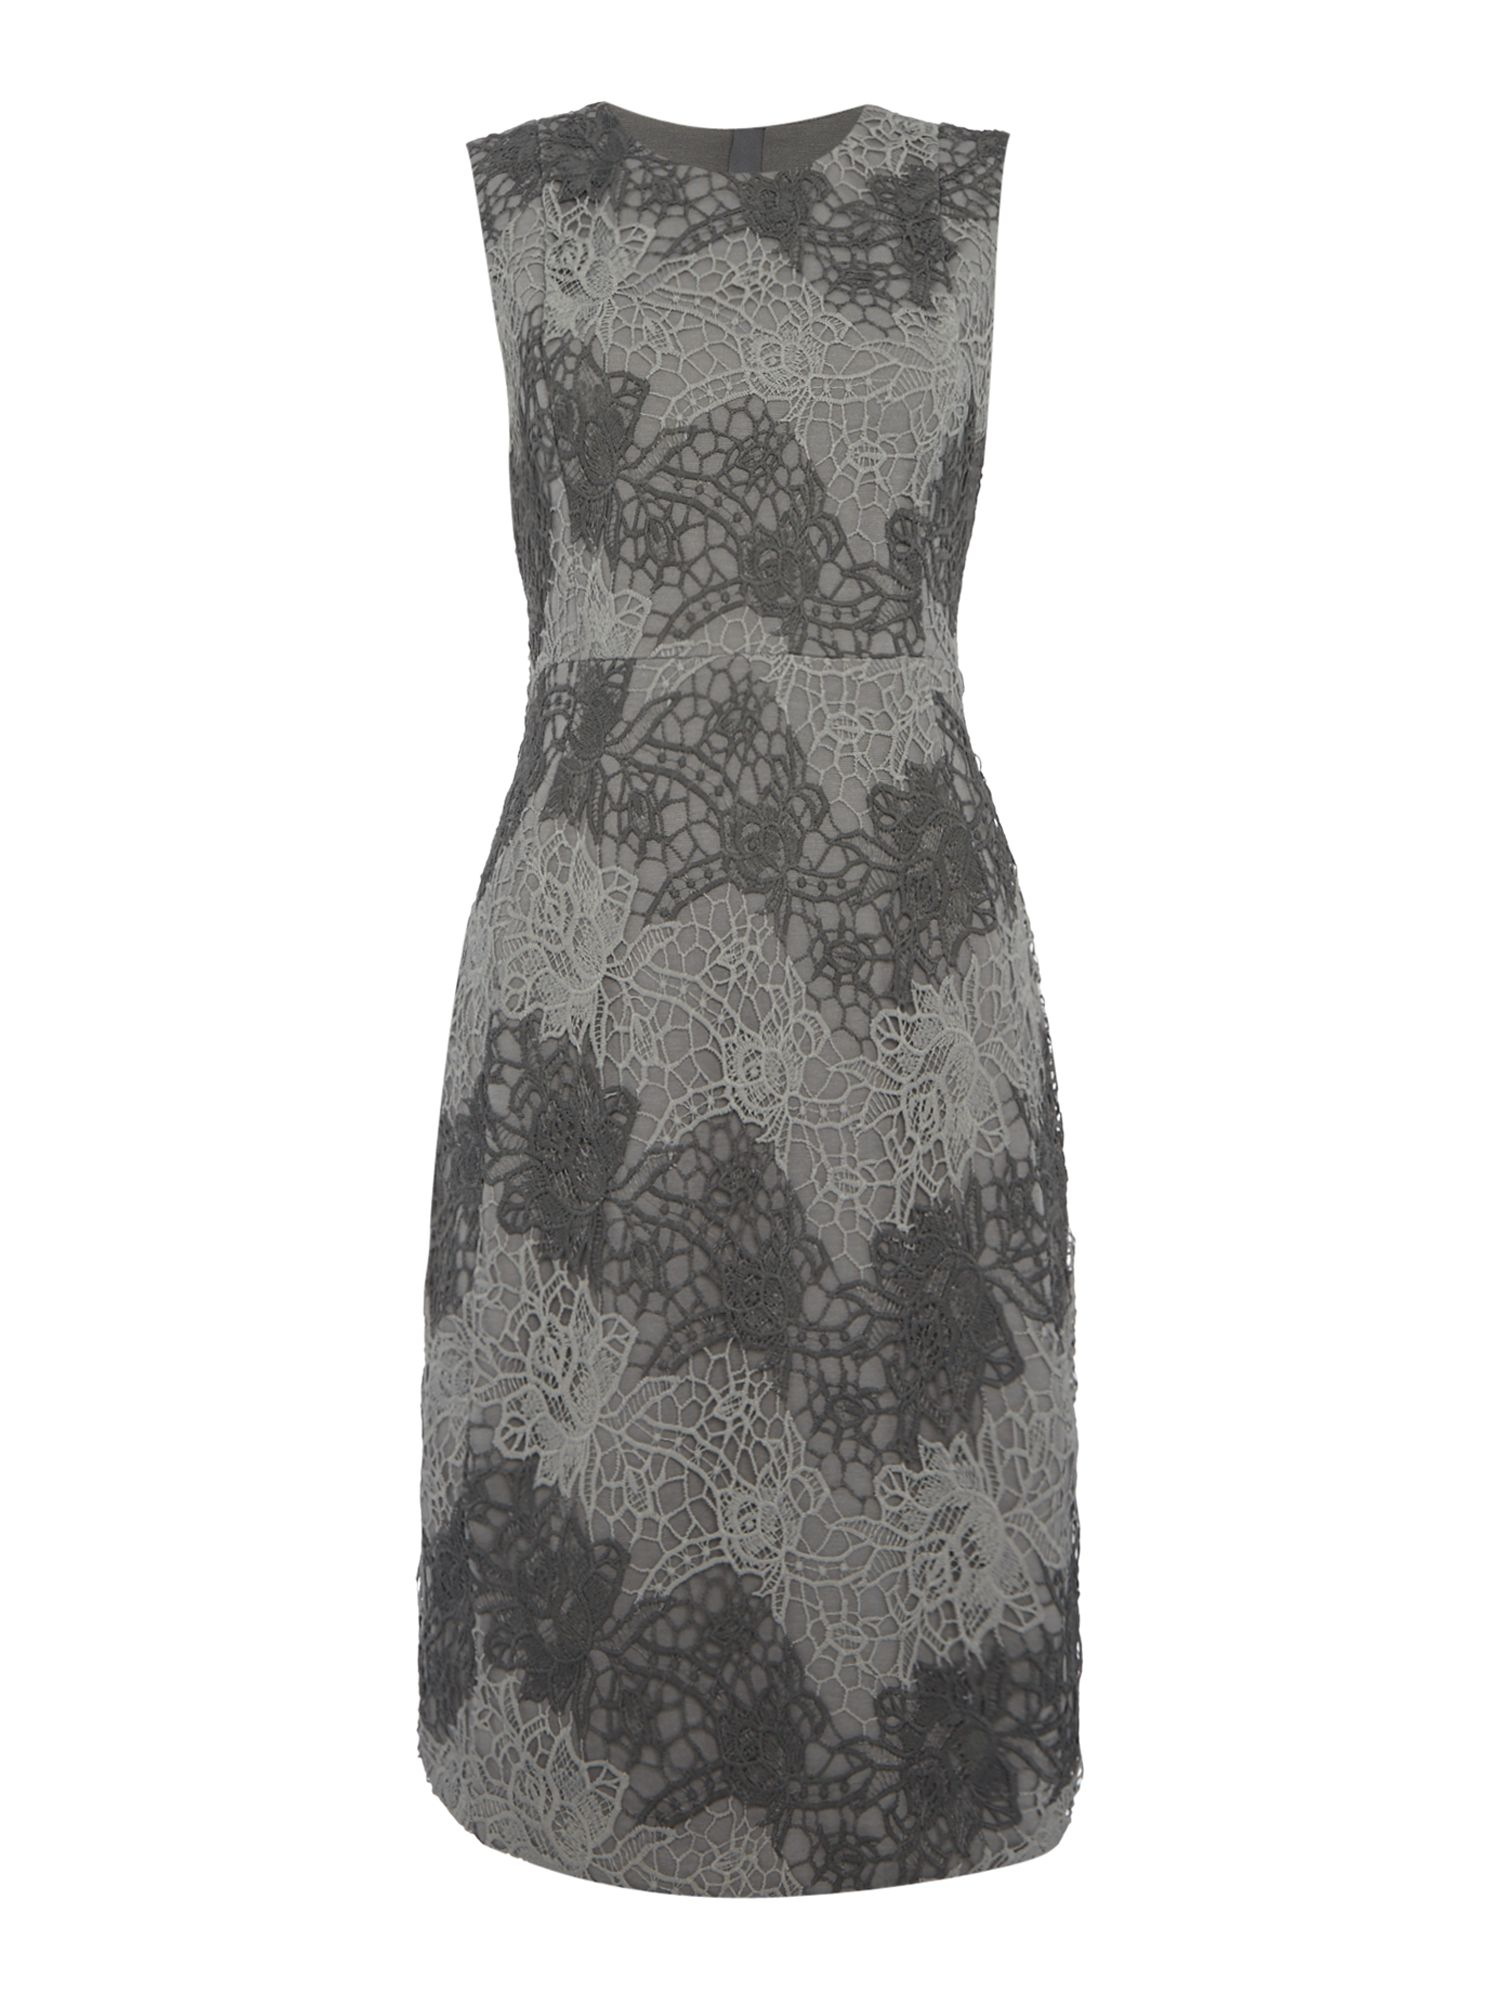 Episode Episode Textured lace shift dress, Grey